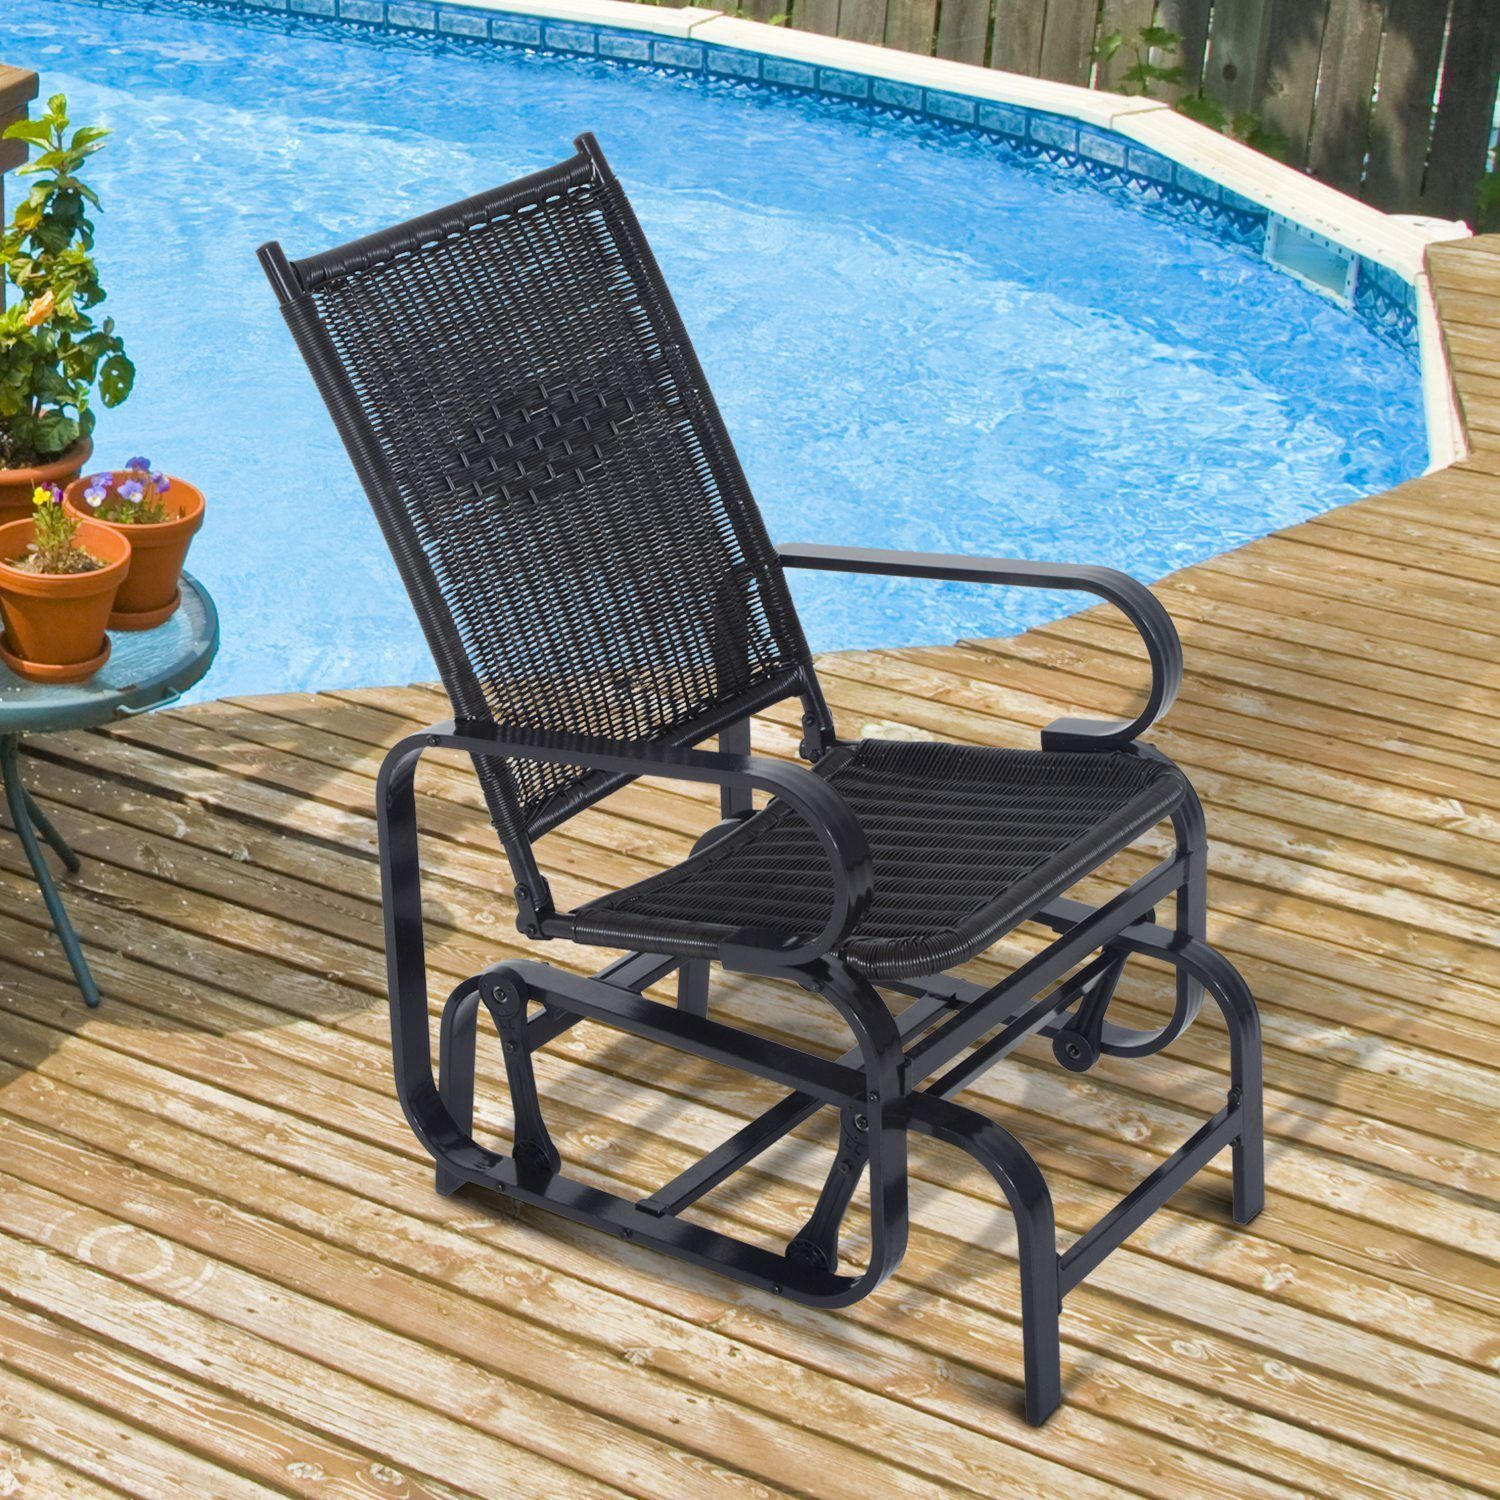 Outsunny Rattan Patio Glider Rocking Chair Swing Seat Wicker Outdoor  Furniture